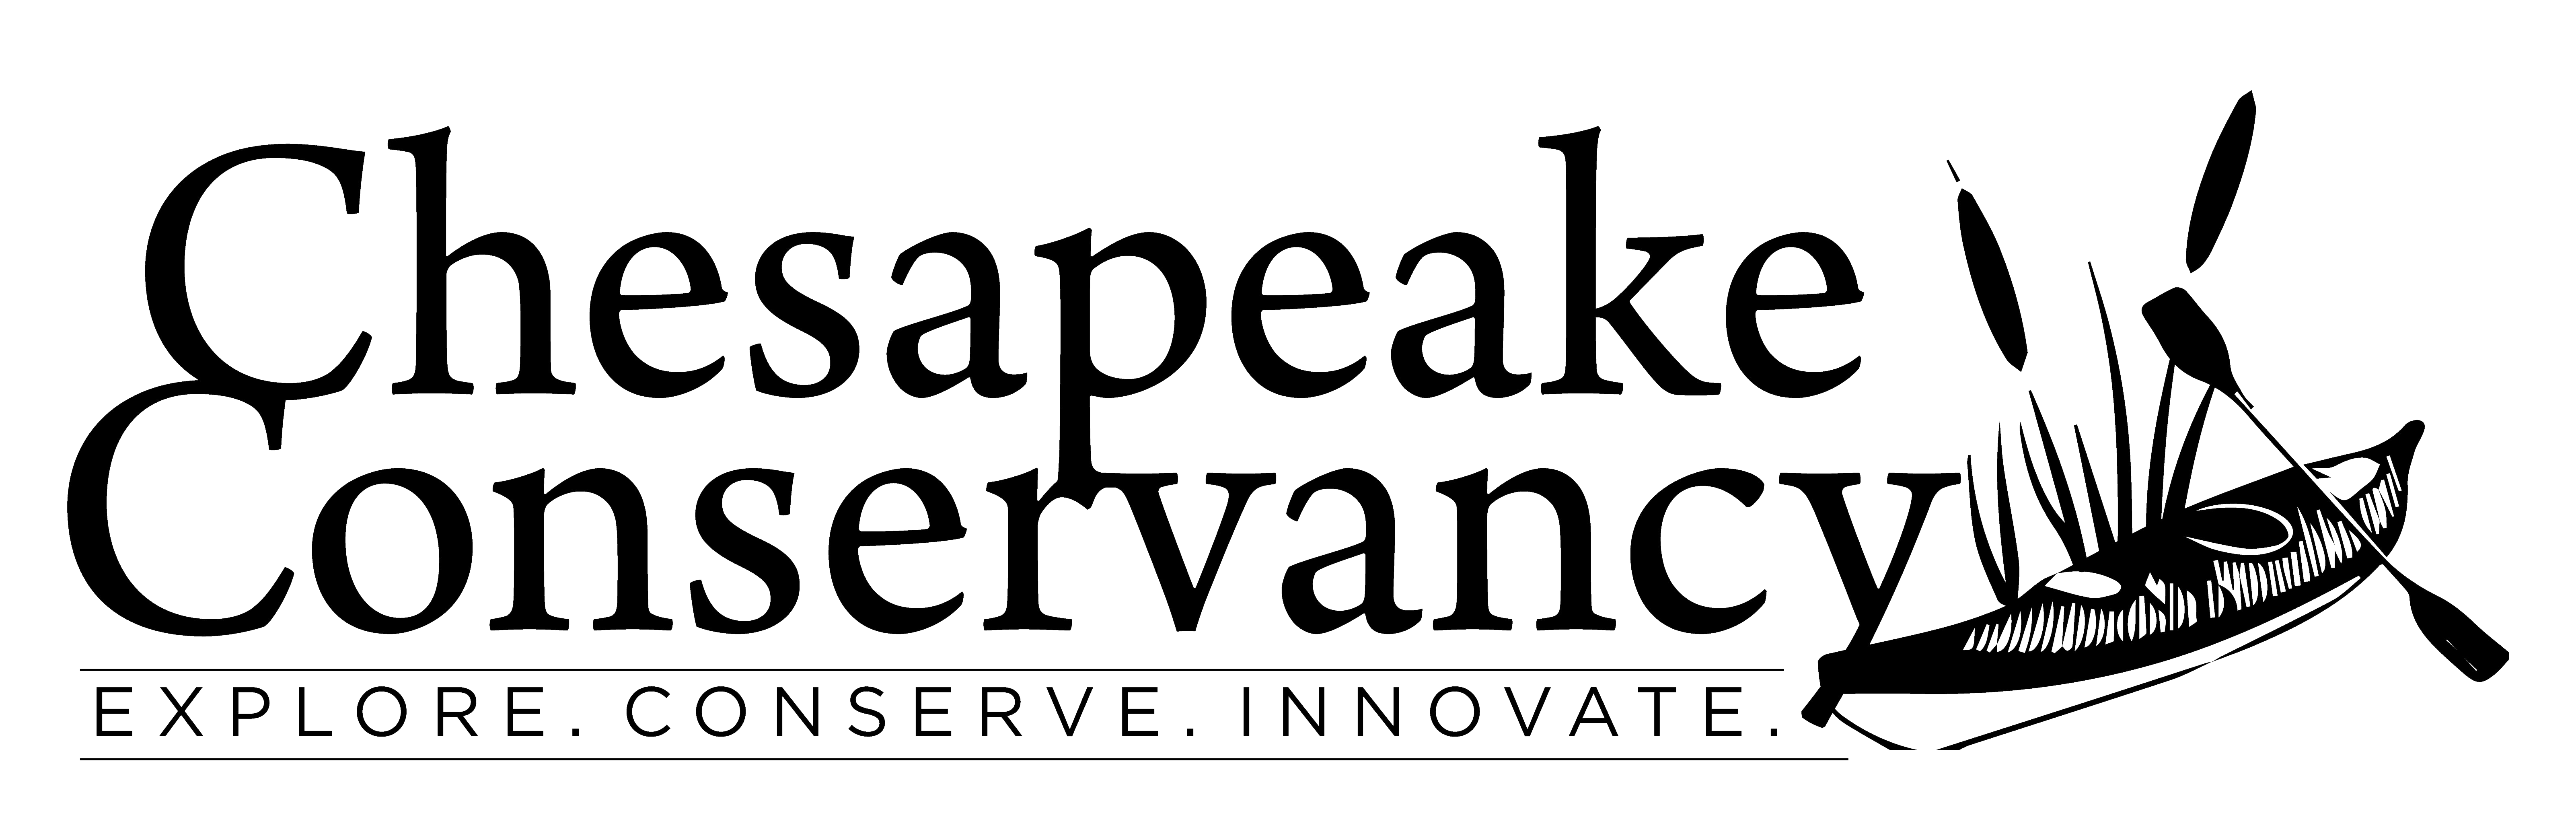 Chesapeake Conservancy Logo